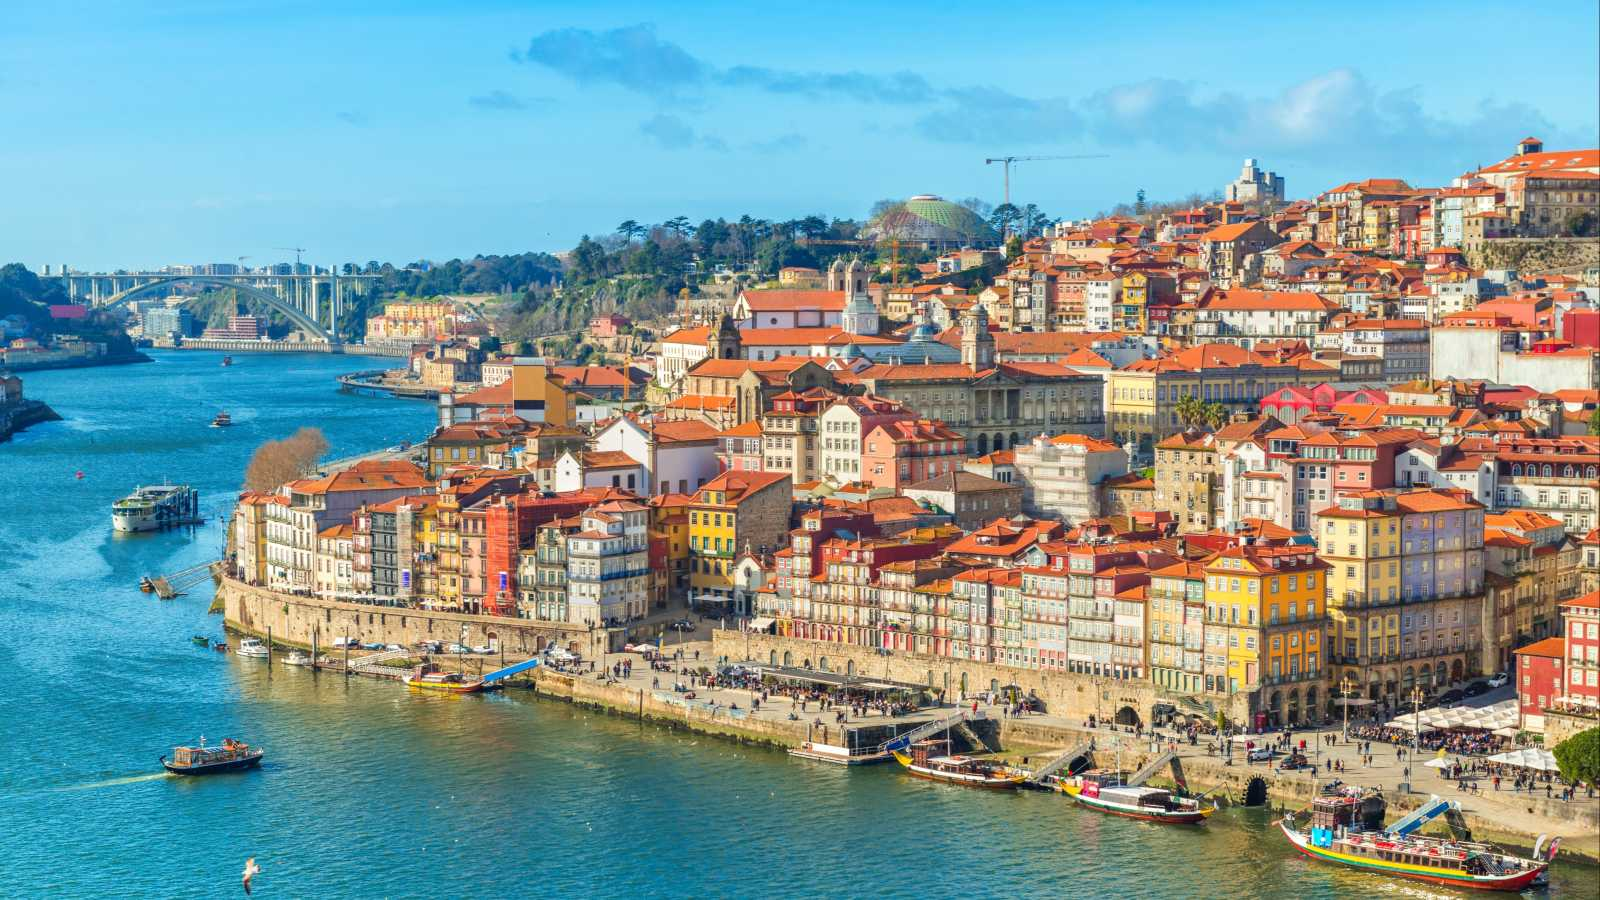 Discover the beautiful Porto skyline, the Douro River, and brightly lit buildings on a tour of Portugal